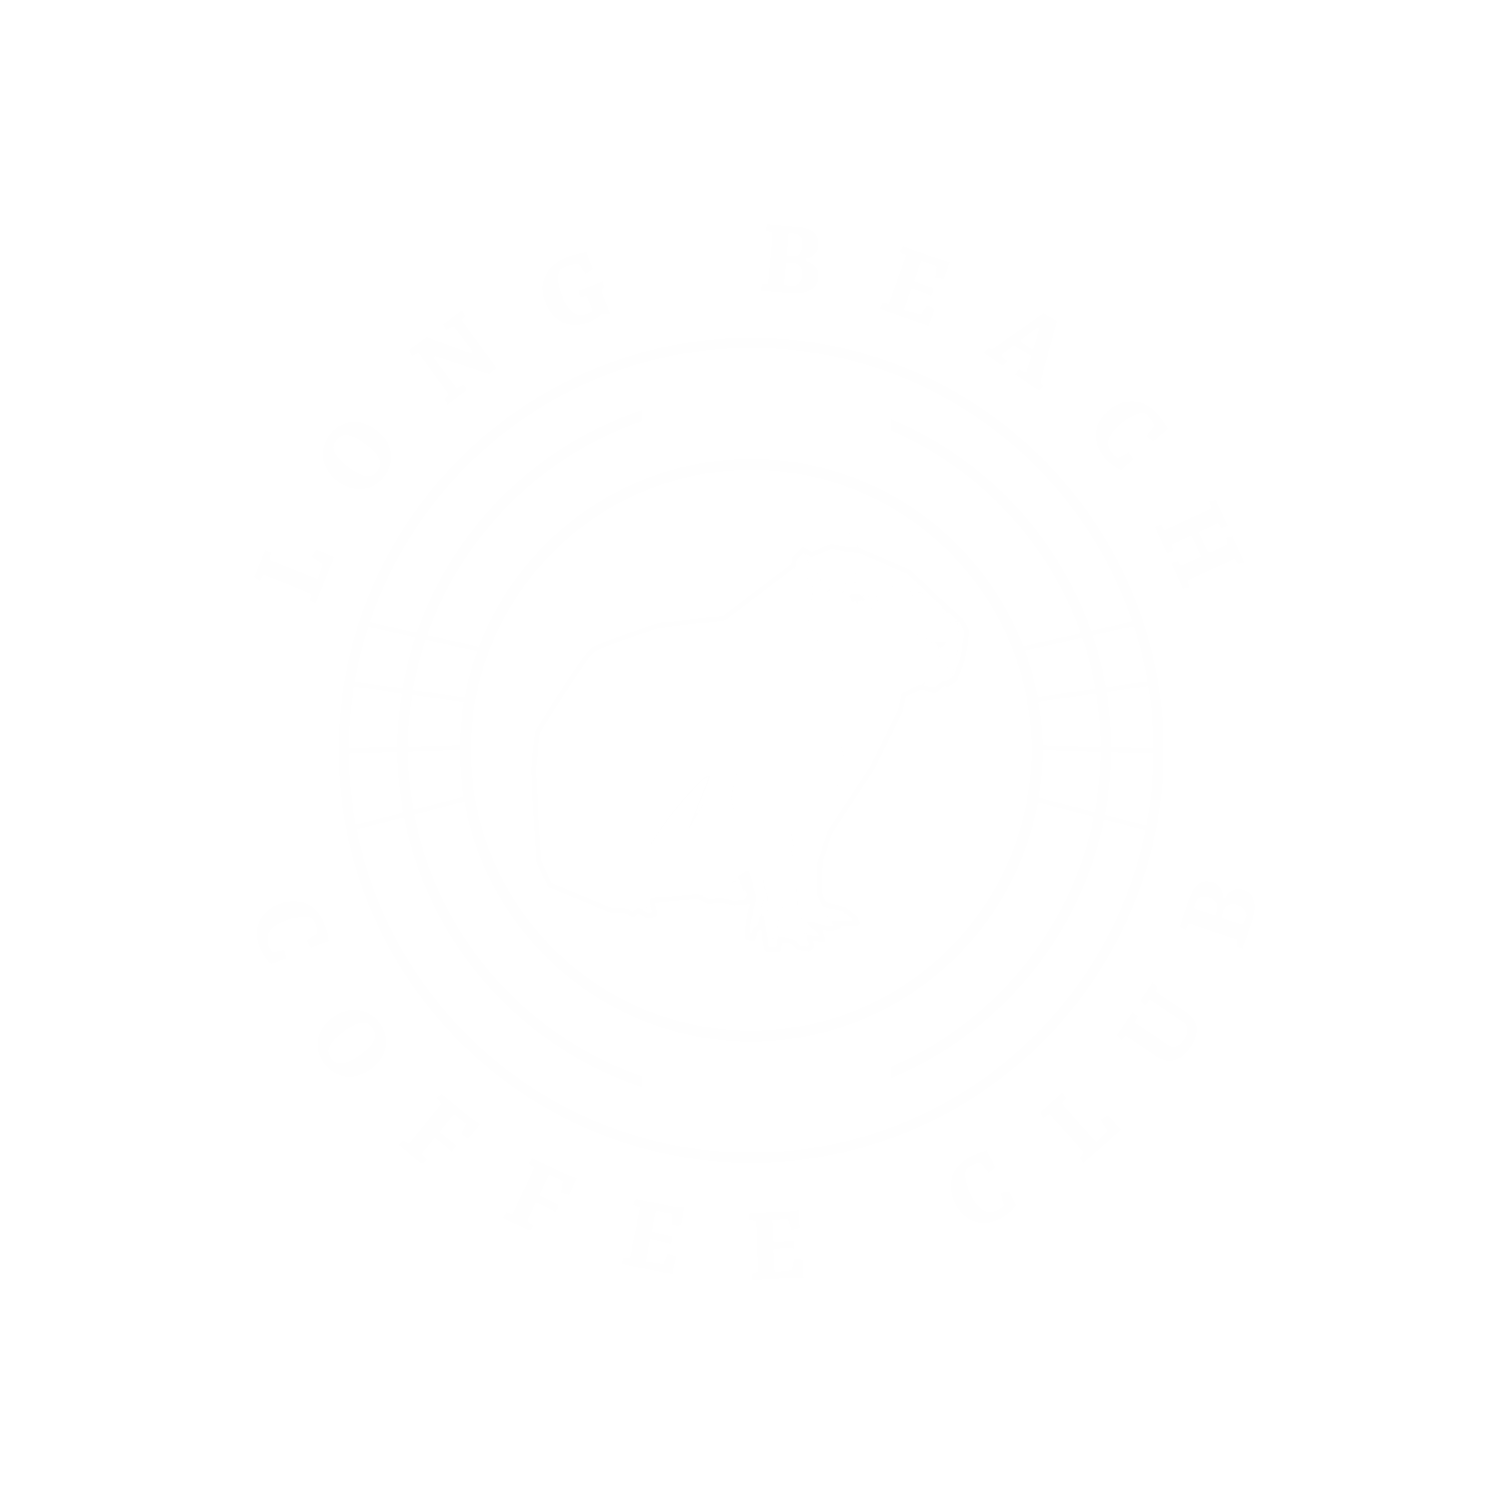 Long Beach Coffee Club